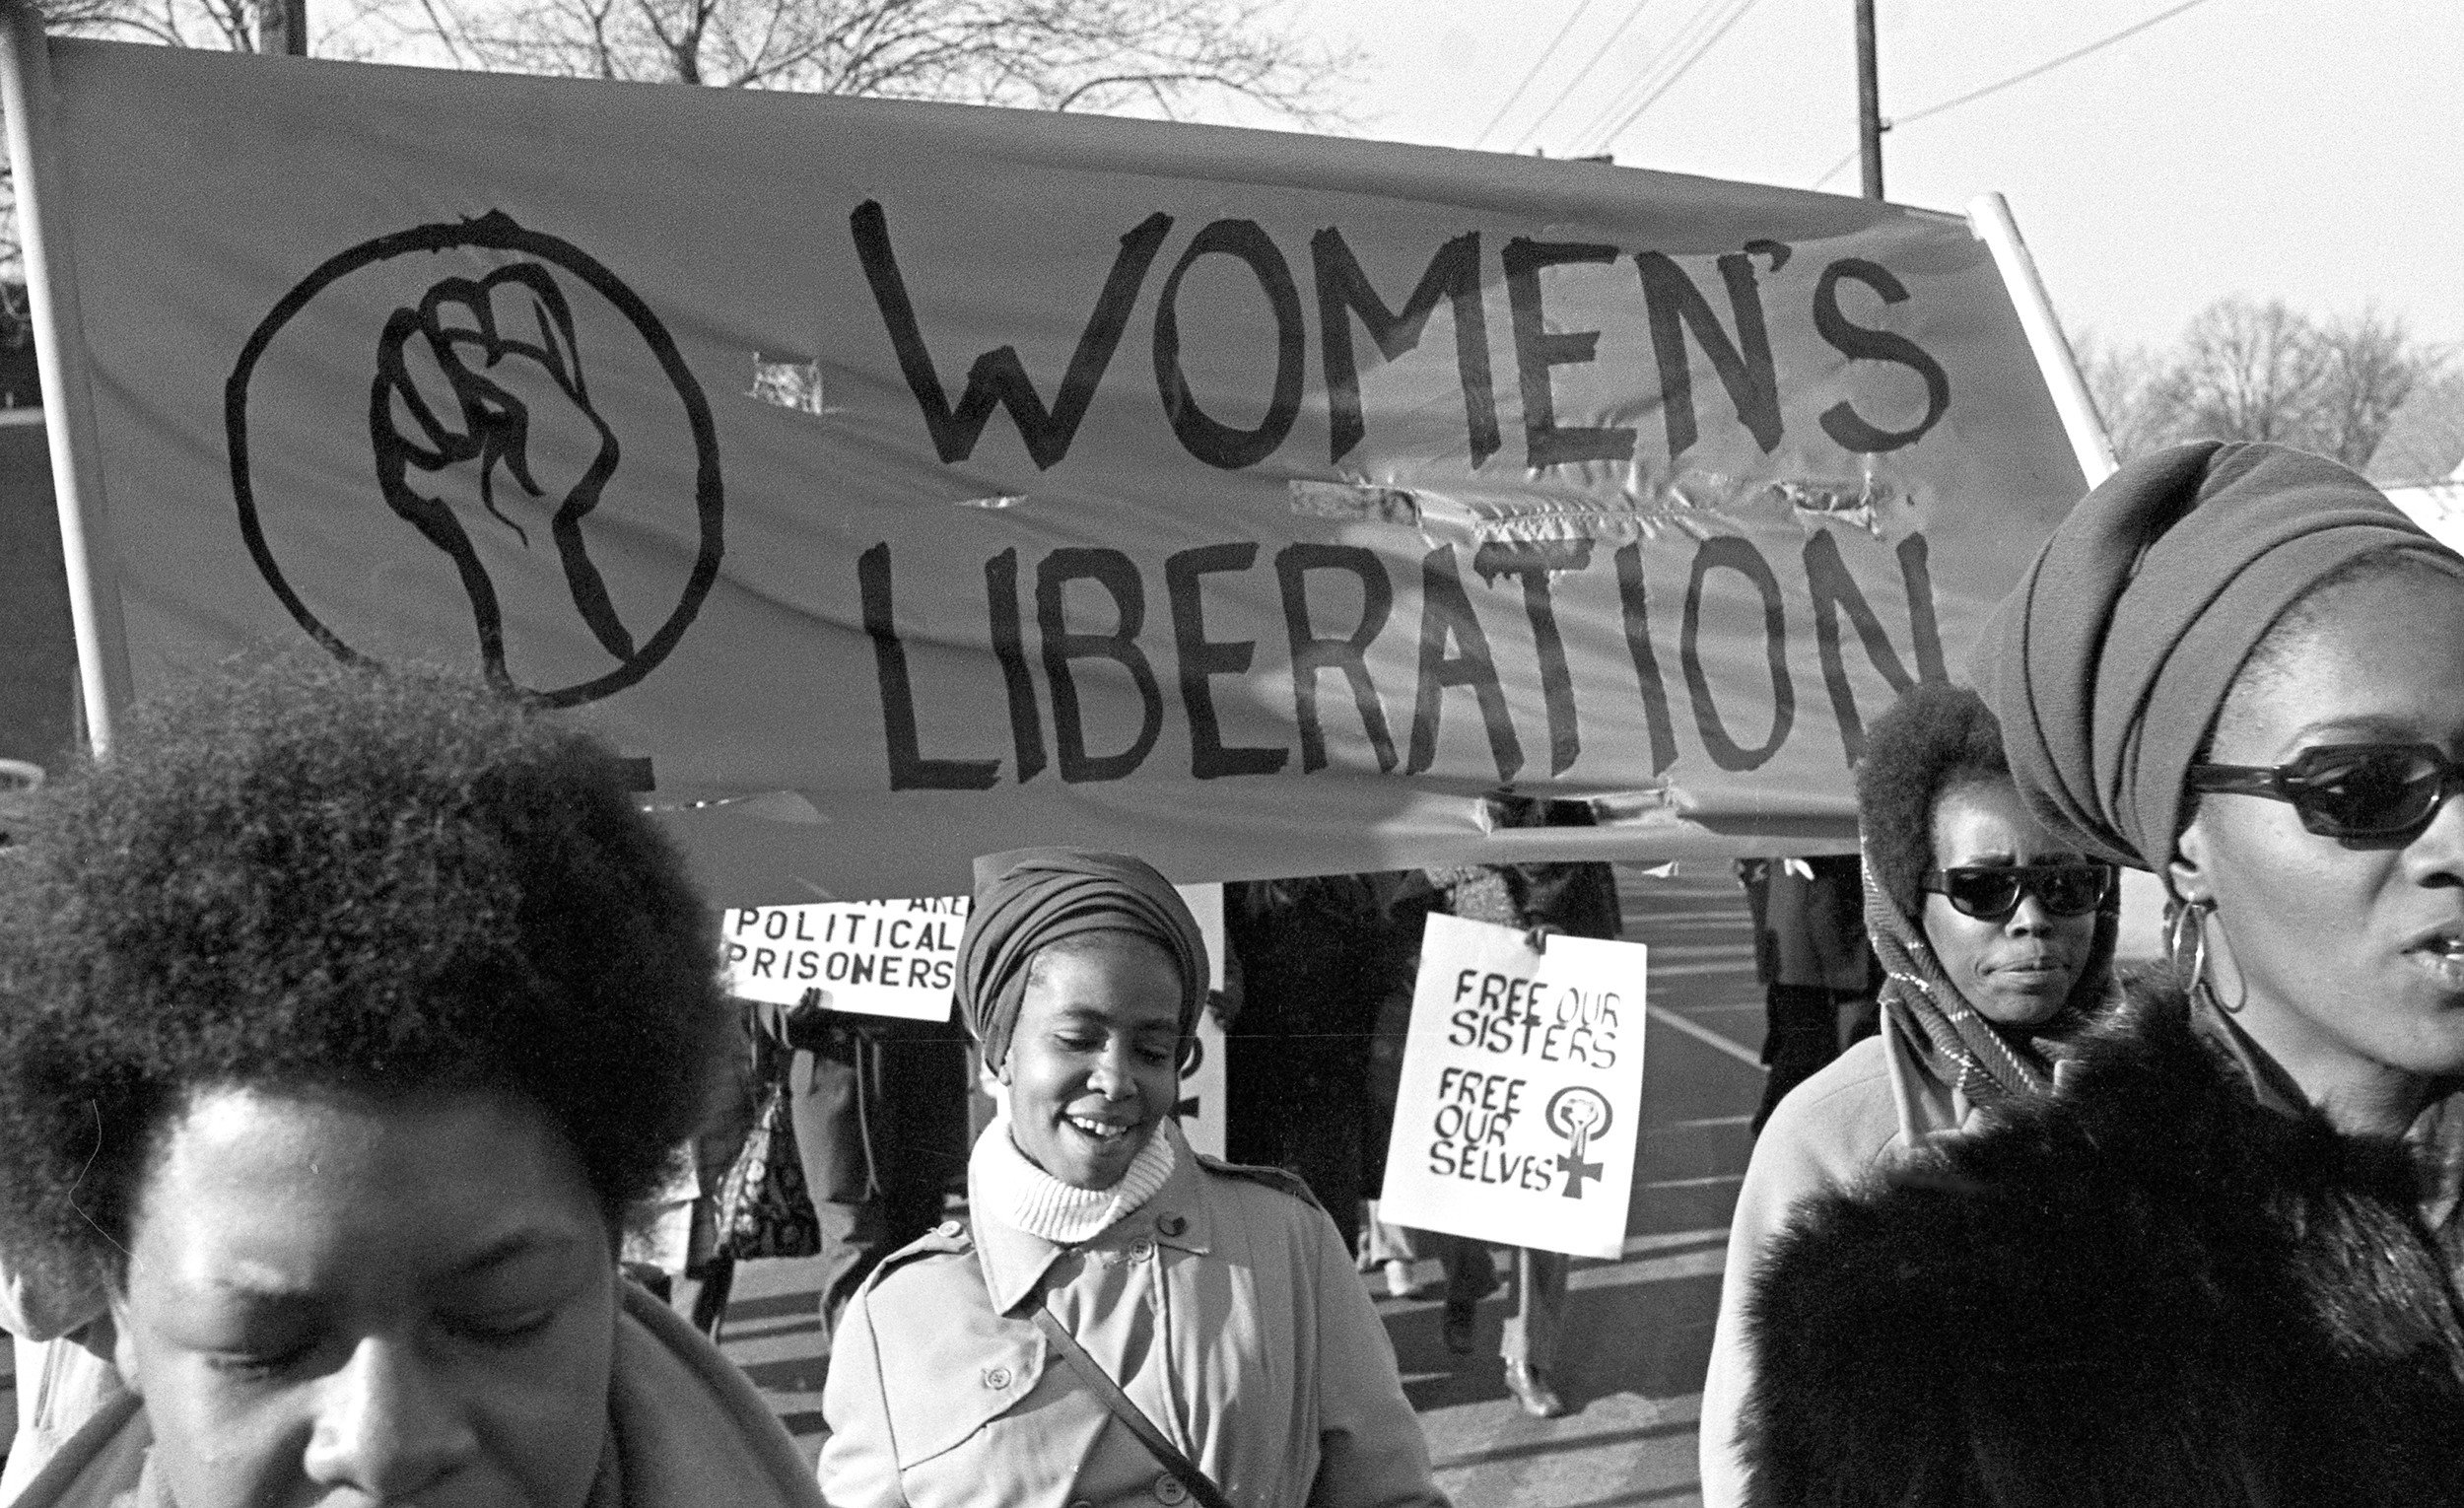 """African women gathered in a front of a banner that says """"Women's liberation"""""""